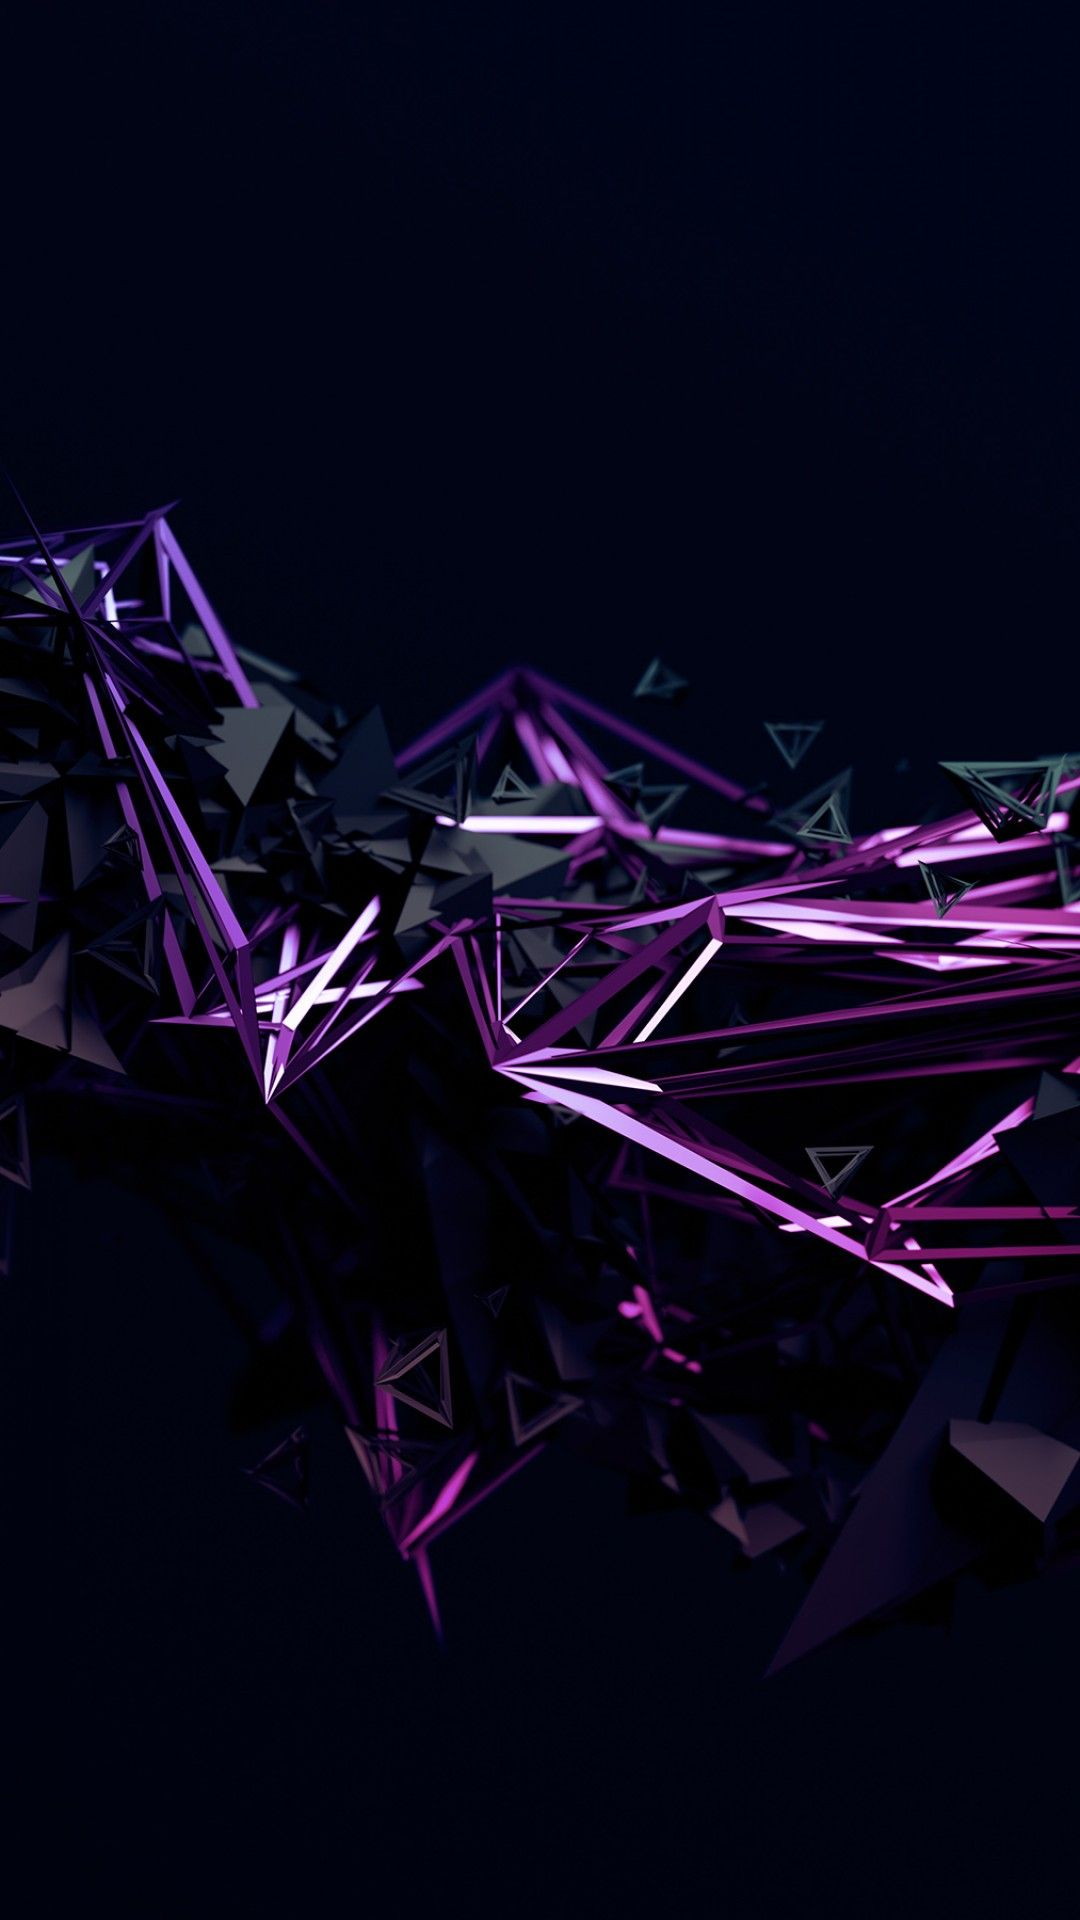 Geometric Dark Hd Wallpaper Android in 2020 (With images